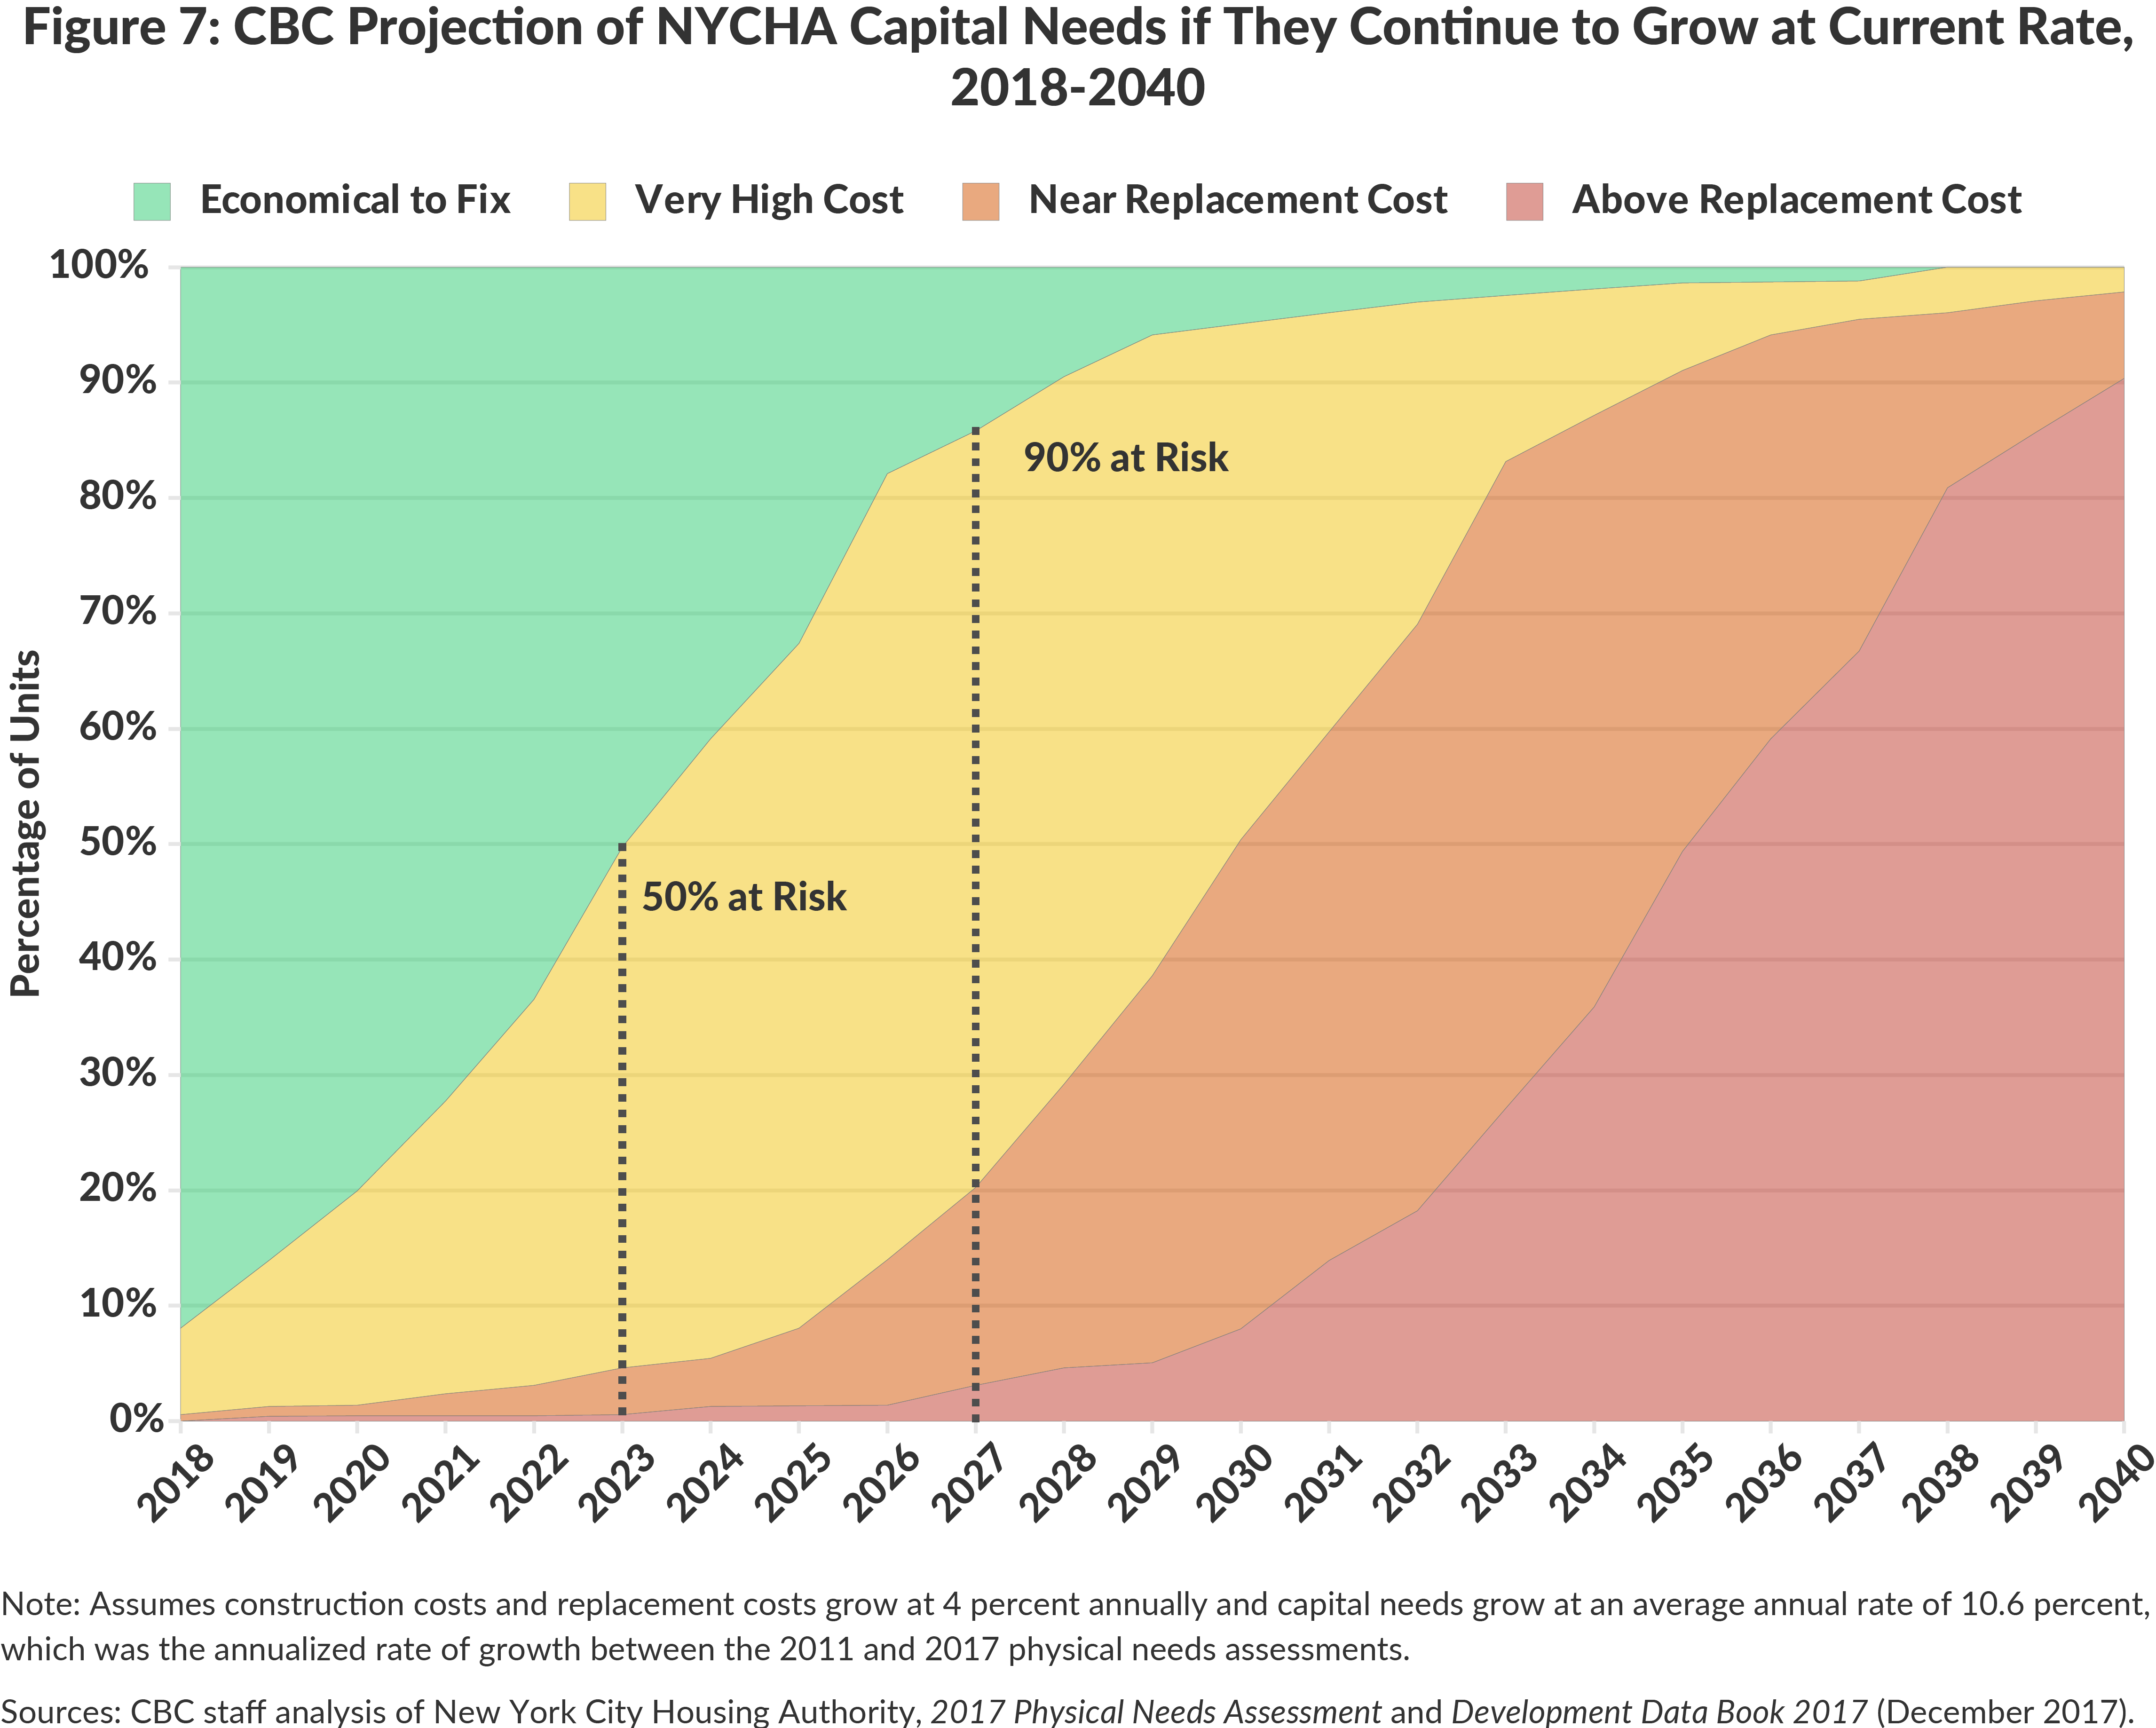 Figure 7: CBC Projection of NYCHA Capital Needs if They Continue to Grow at Current Rate, 2018-2040